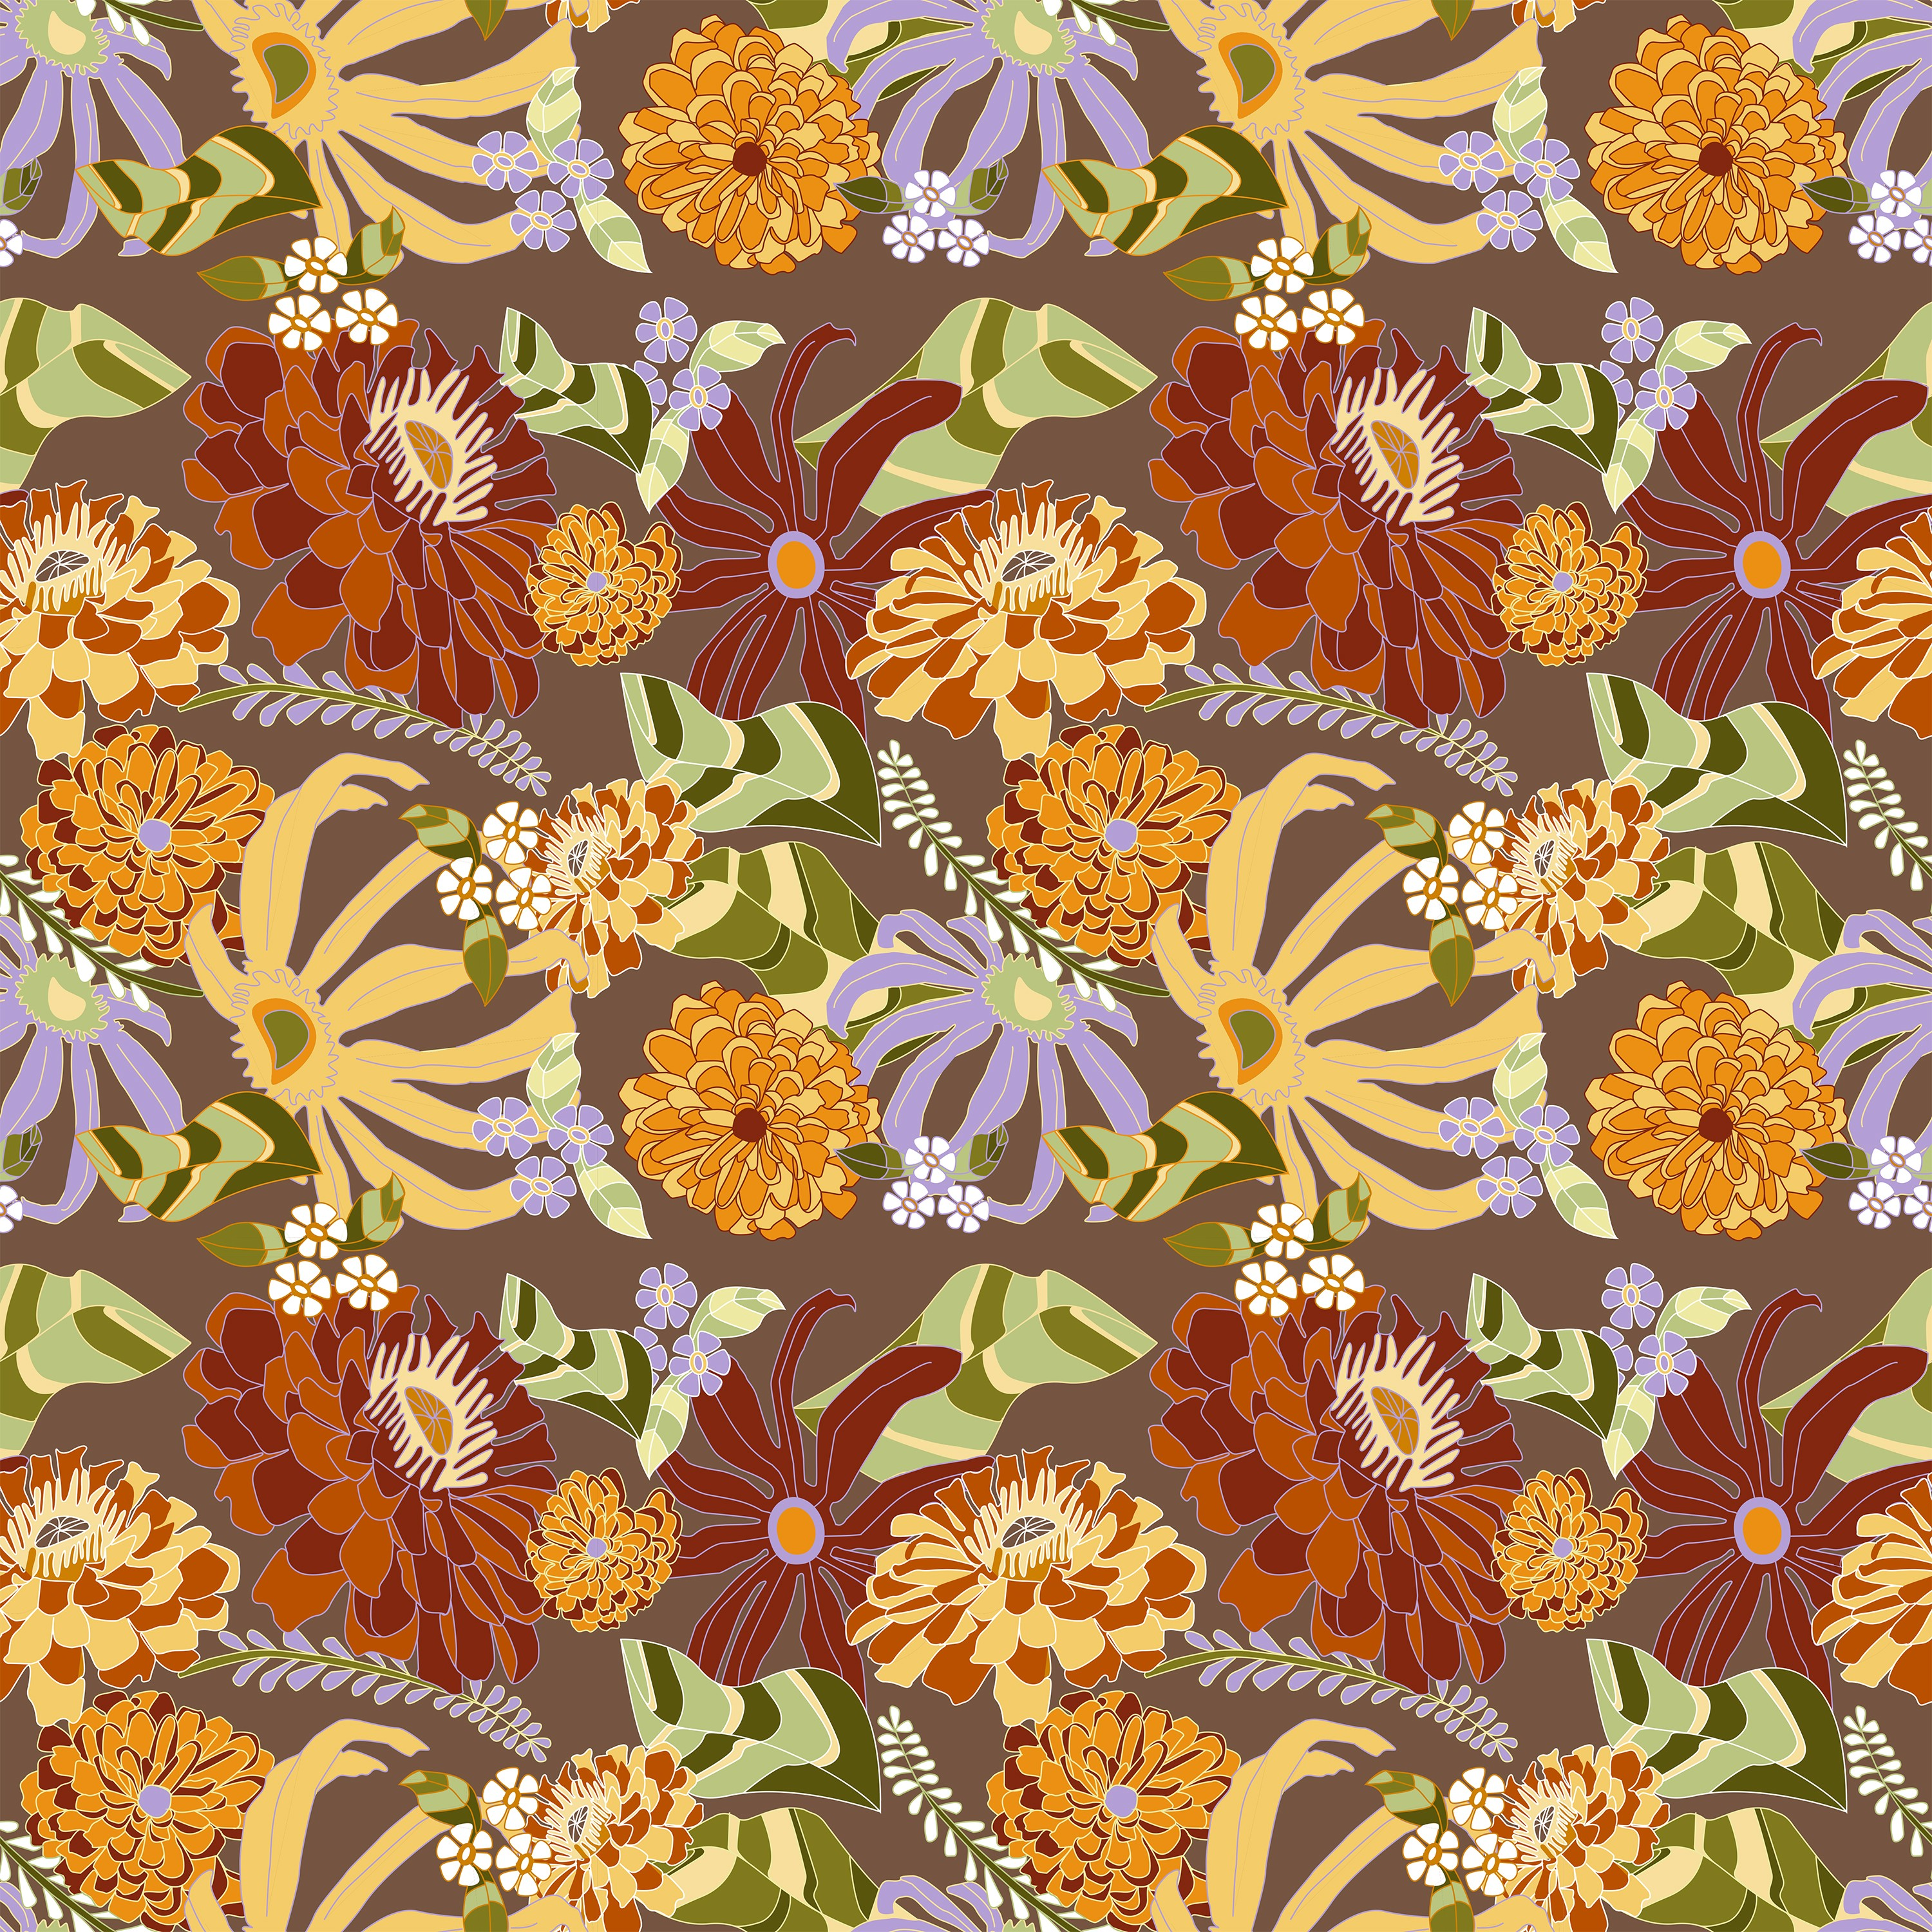 For this surface pattern design I drew inspiration from 60's and 70's floral patterns and my love of gardening. This pattern was created to be applied to gardening supplies, specifically an apron in this case. The pattern has warm earthy tones such as war